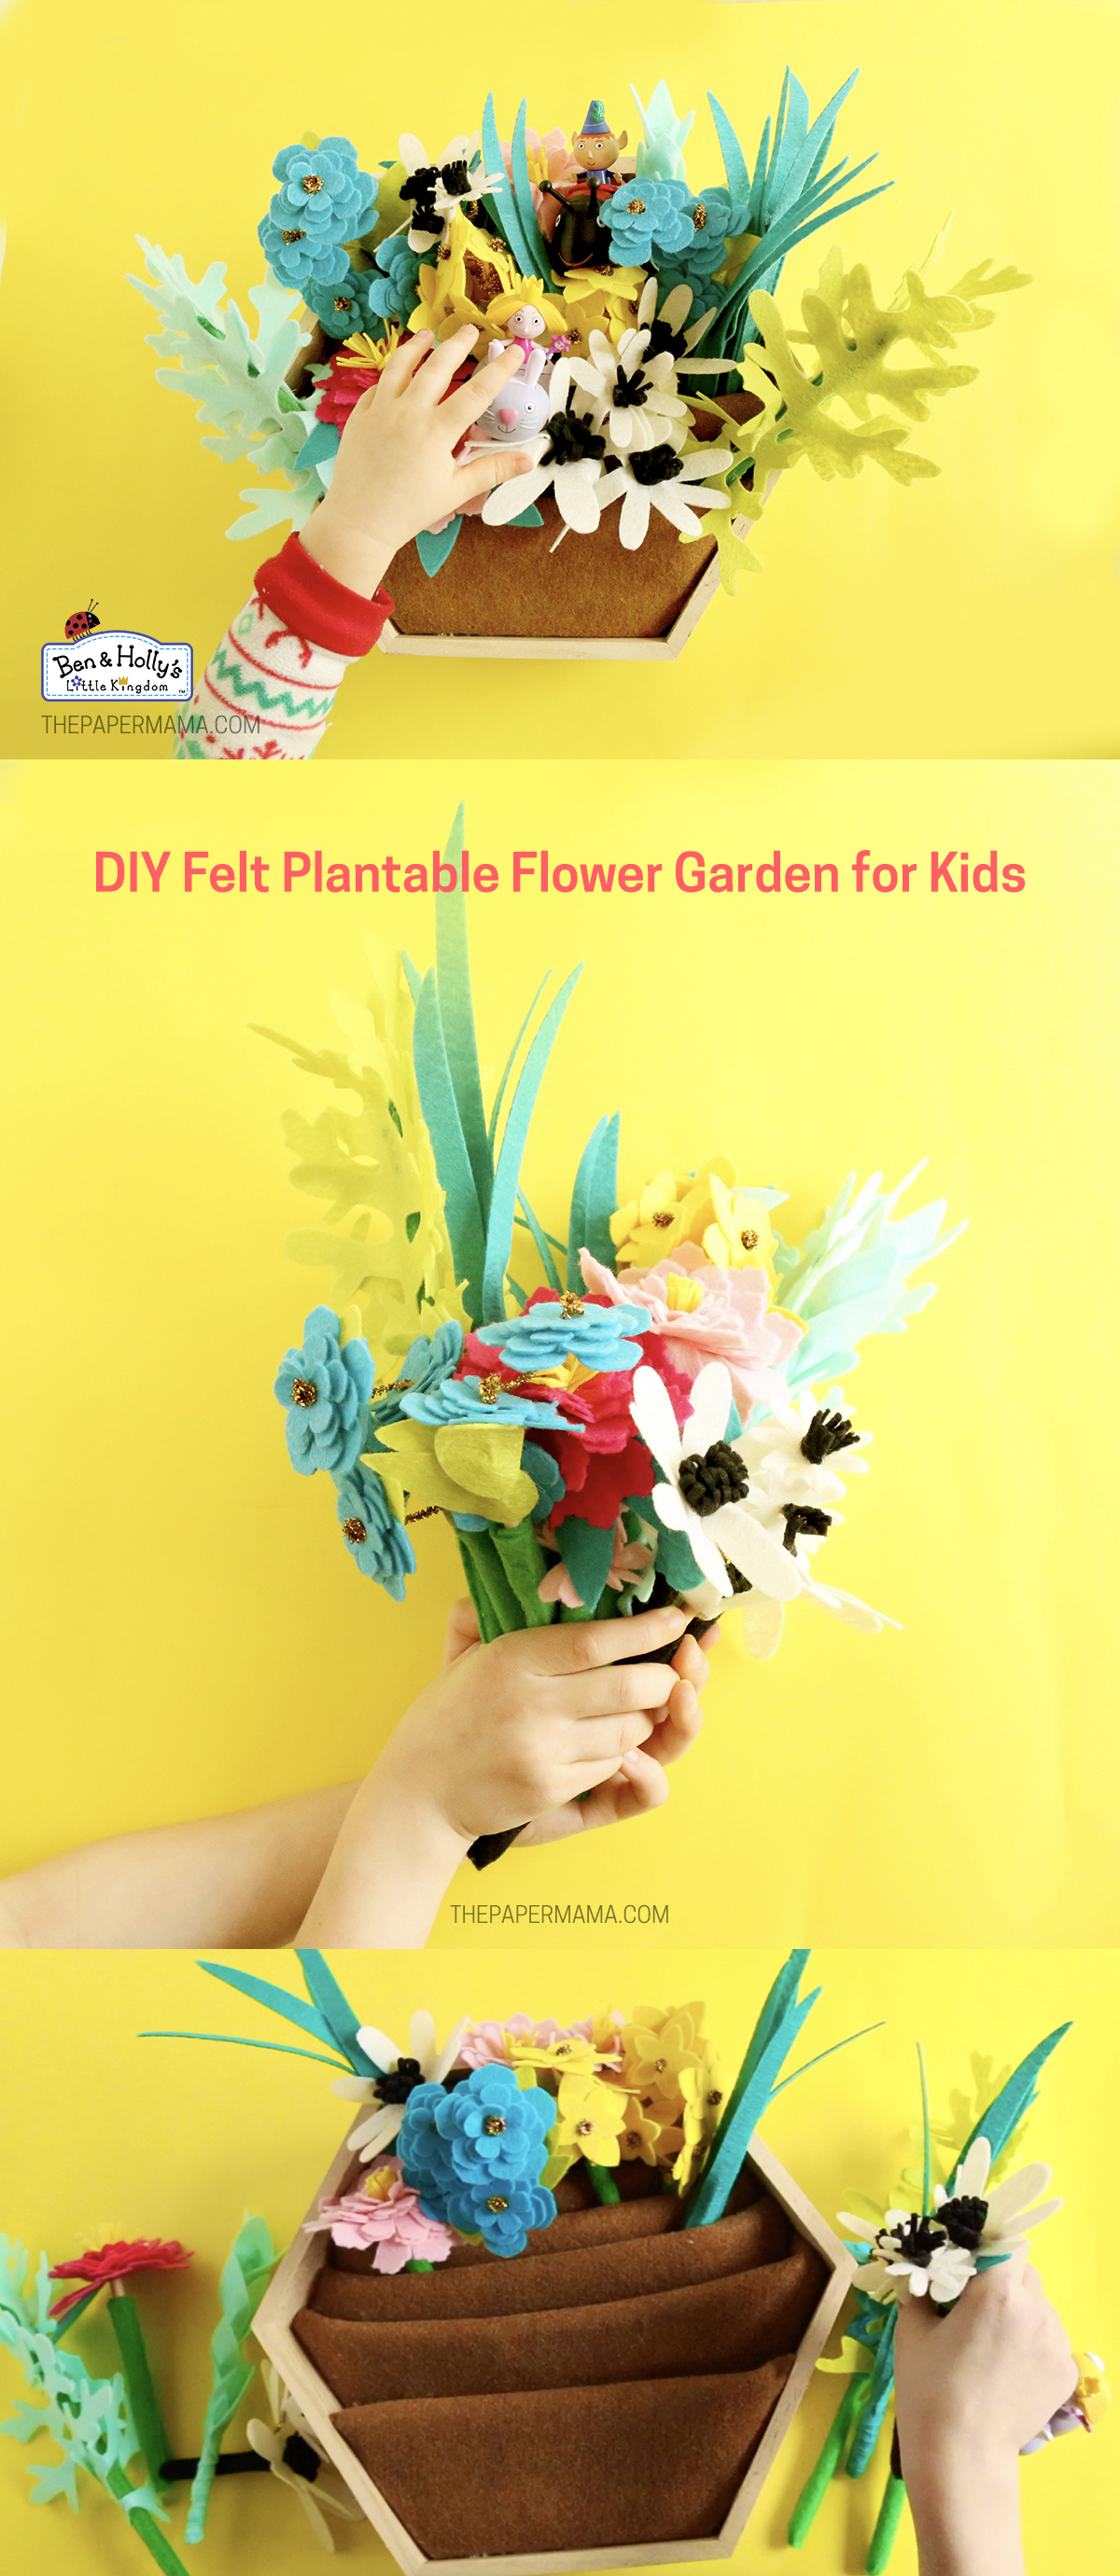 DIY Felt Plantable Flower Garden for Kids - thepapermama.com